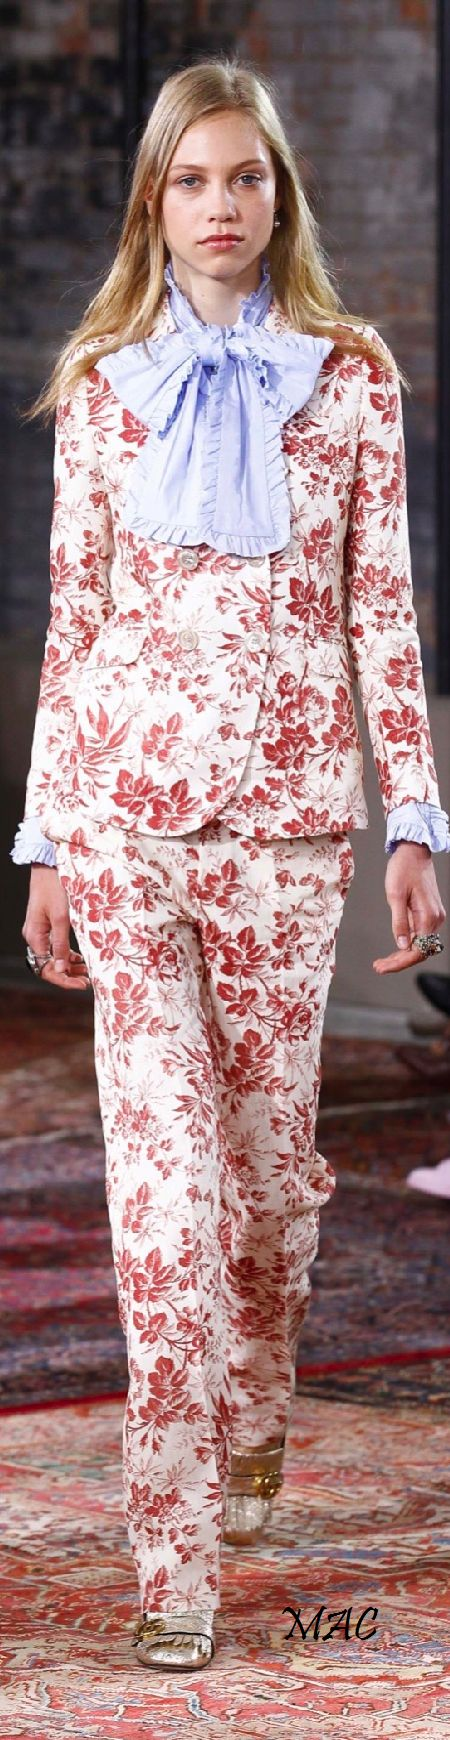 Resort 2016 Gucci women fashion outfit clothing style apparel @roressclothes closet ideas